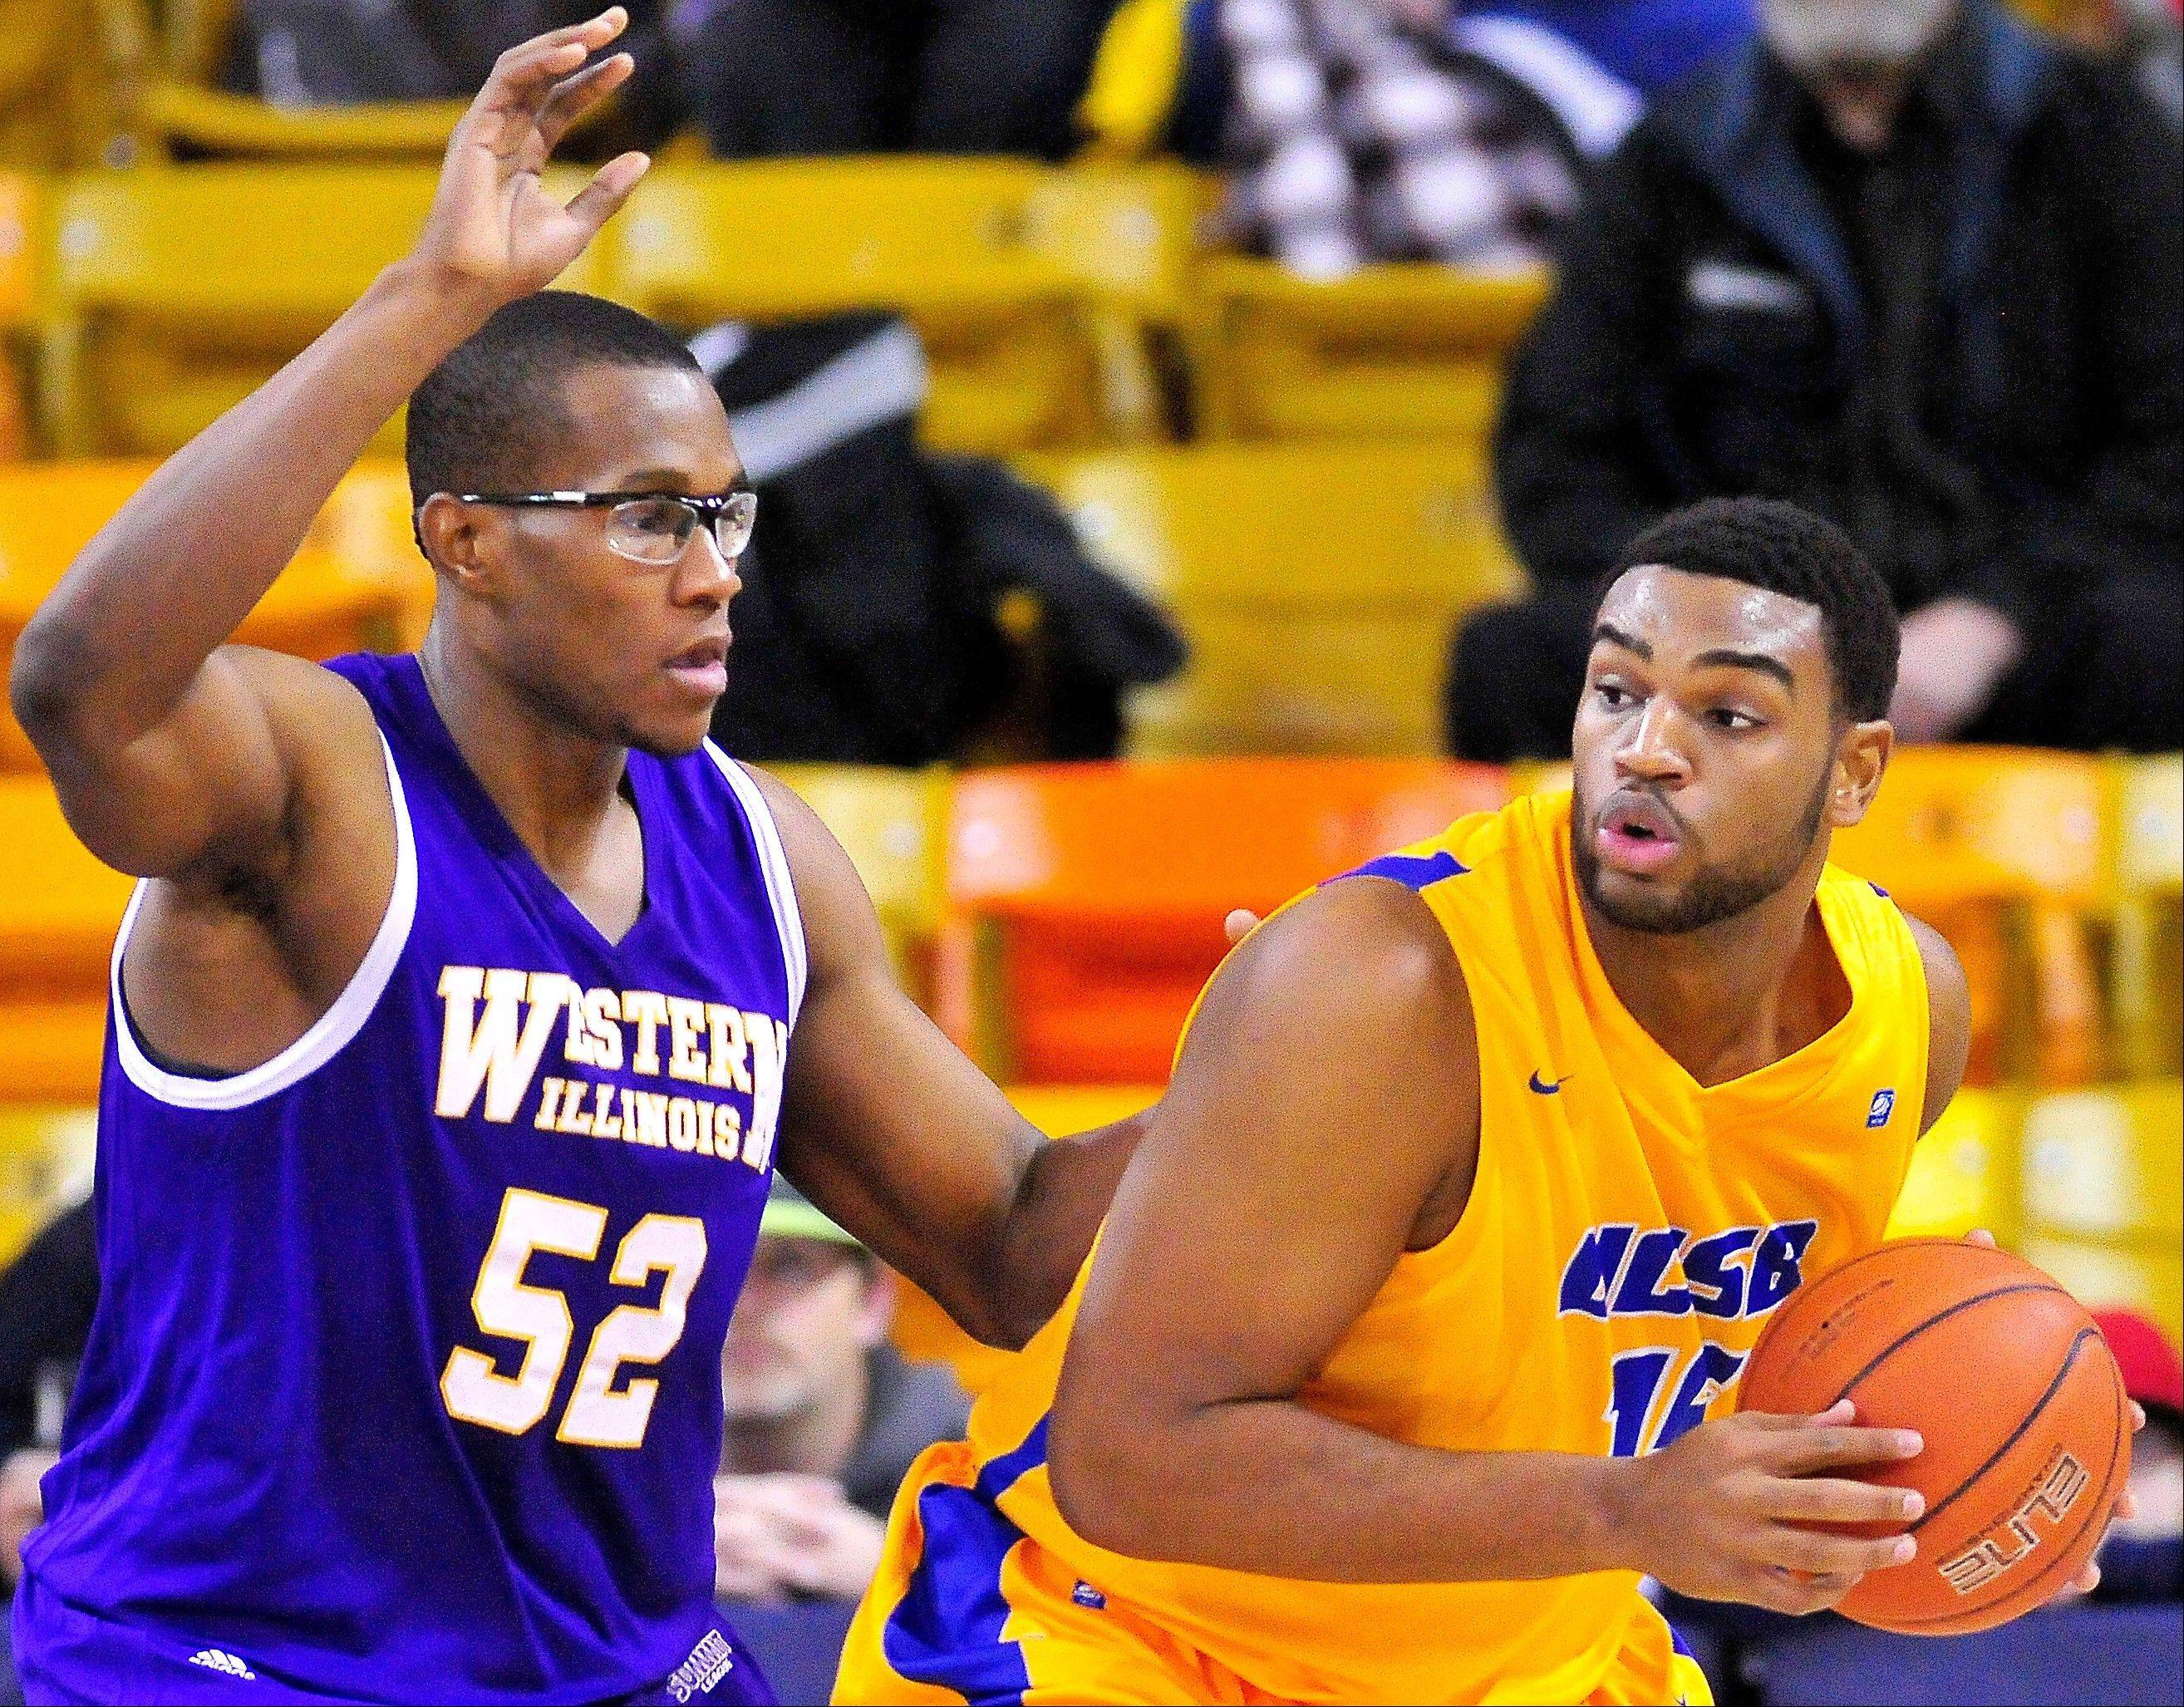 UC Santa Barbara's Alan Williams looks to make a pass while being guarded by Western Illinois' Michael Ochereobia on Saturday in Logan, Utah.